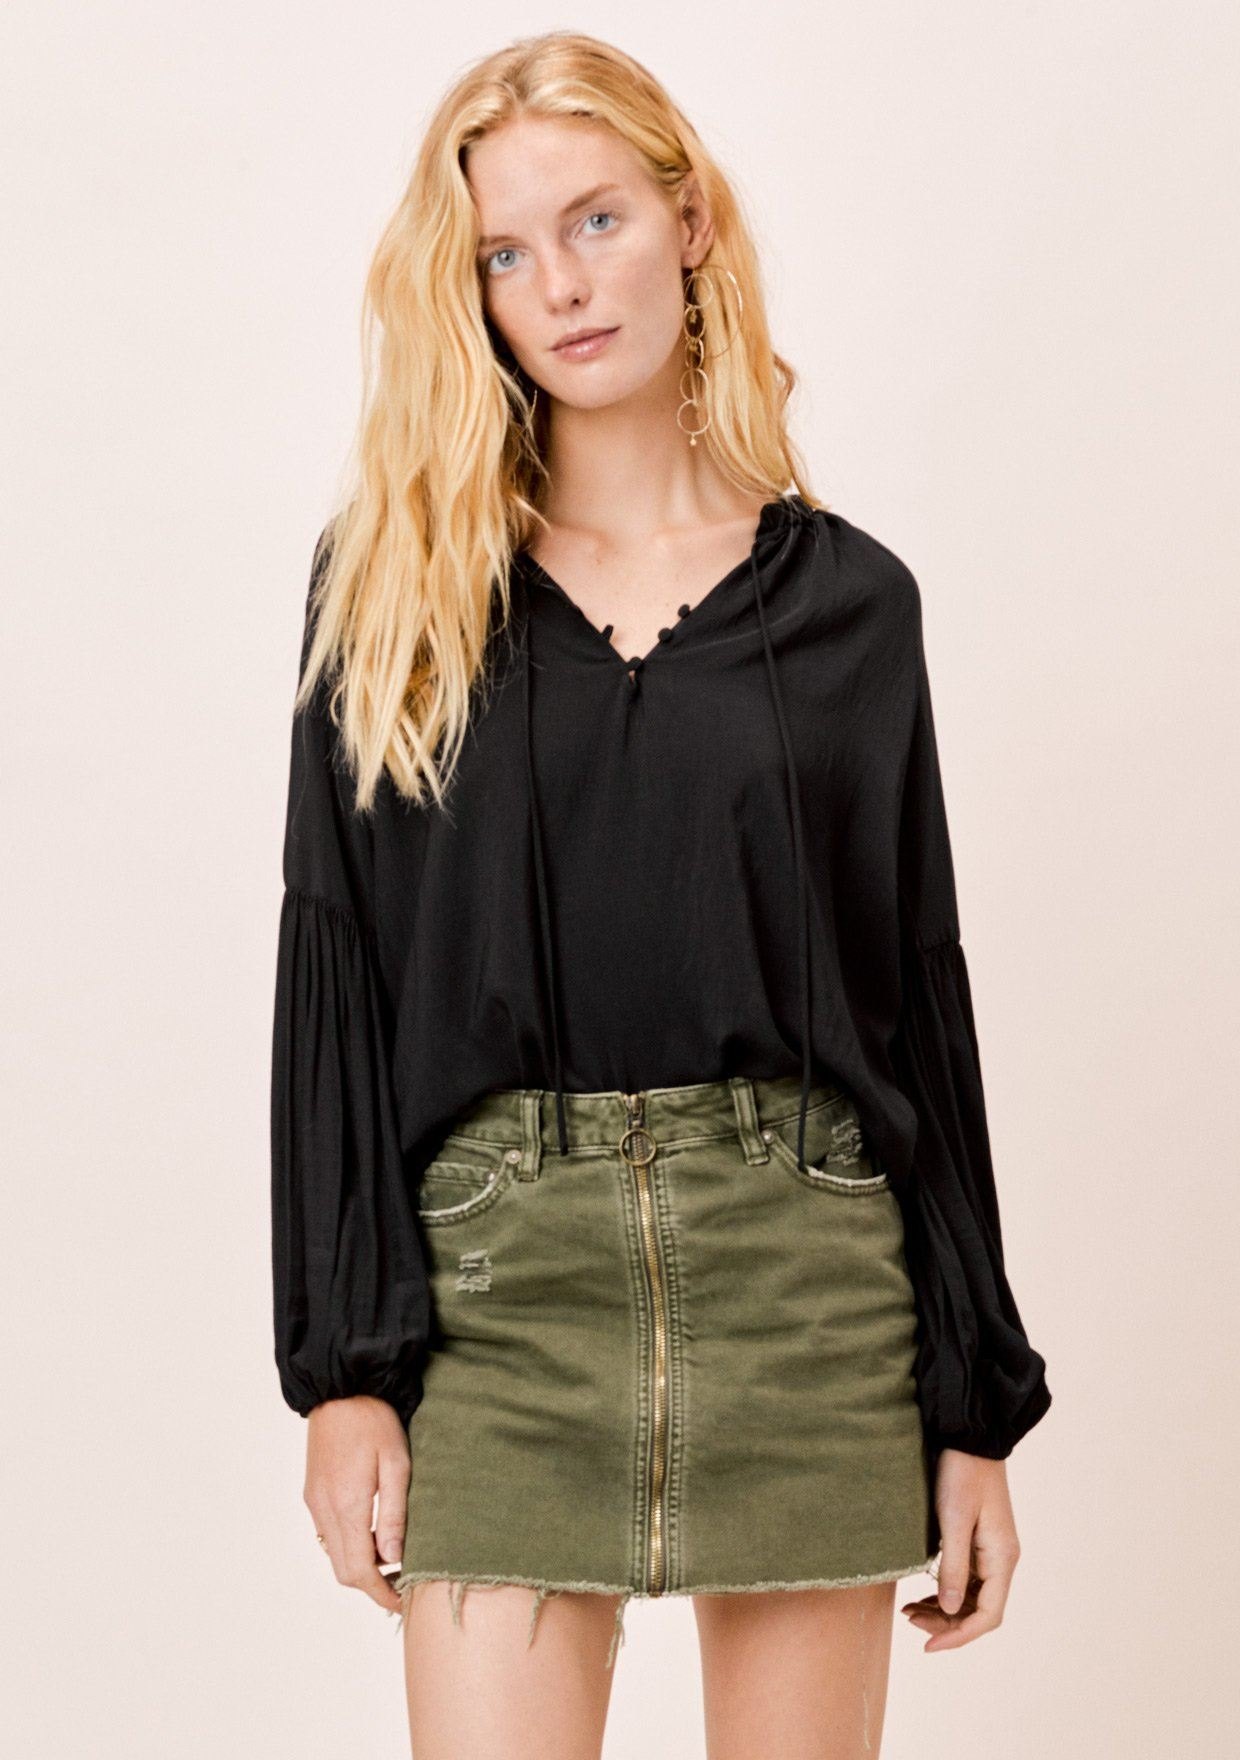 [Color: Black] Lovestitch Black, long lantern sleeve top with ruffle neck detail and covered buttons